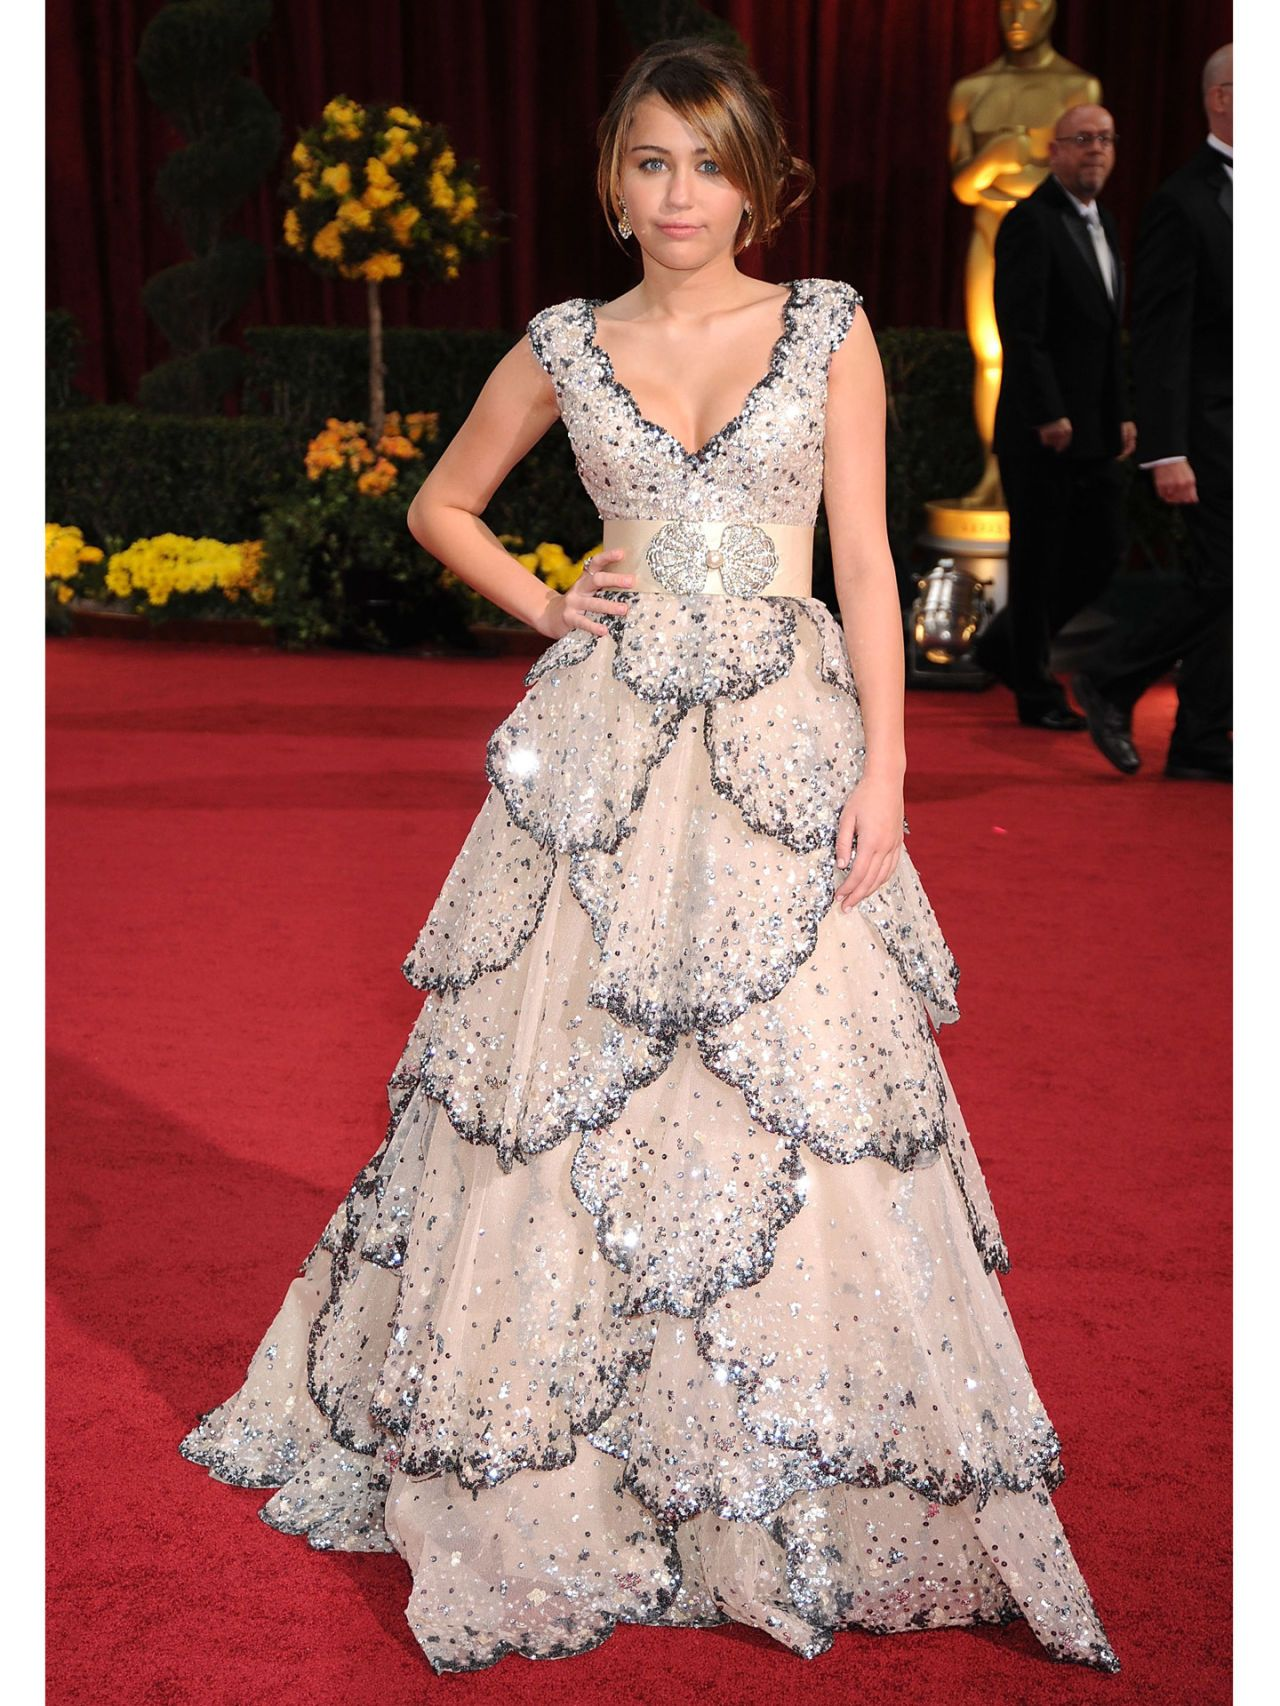 Miley cyrus fashion and style miley cyrus dress for the oscars